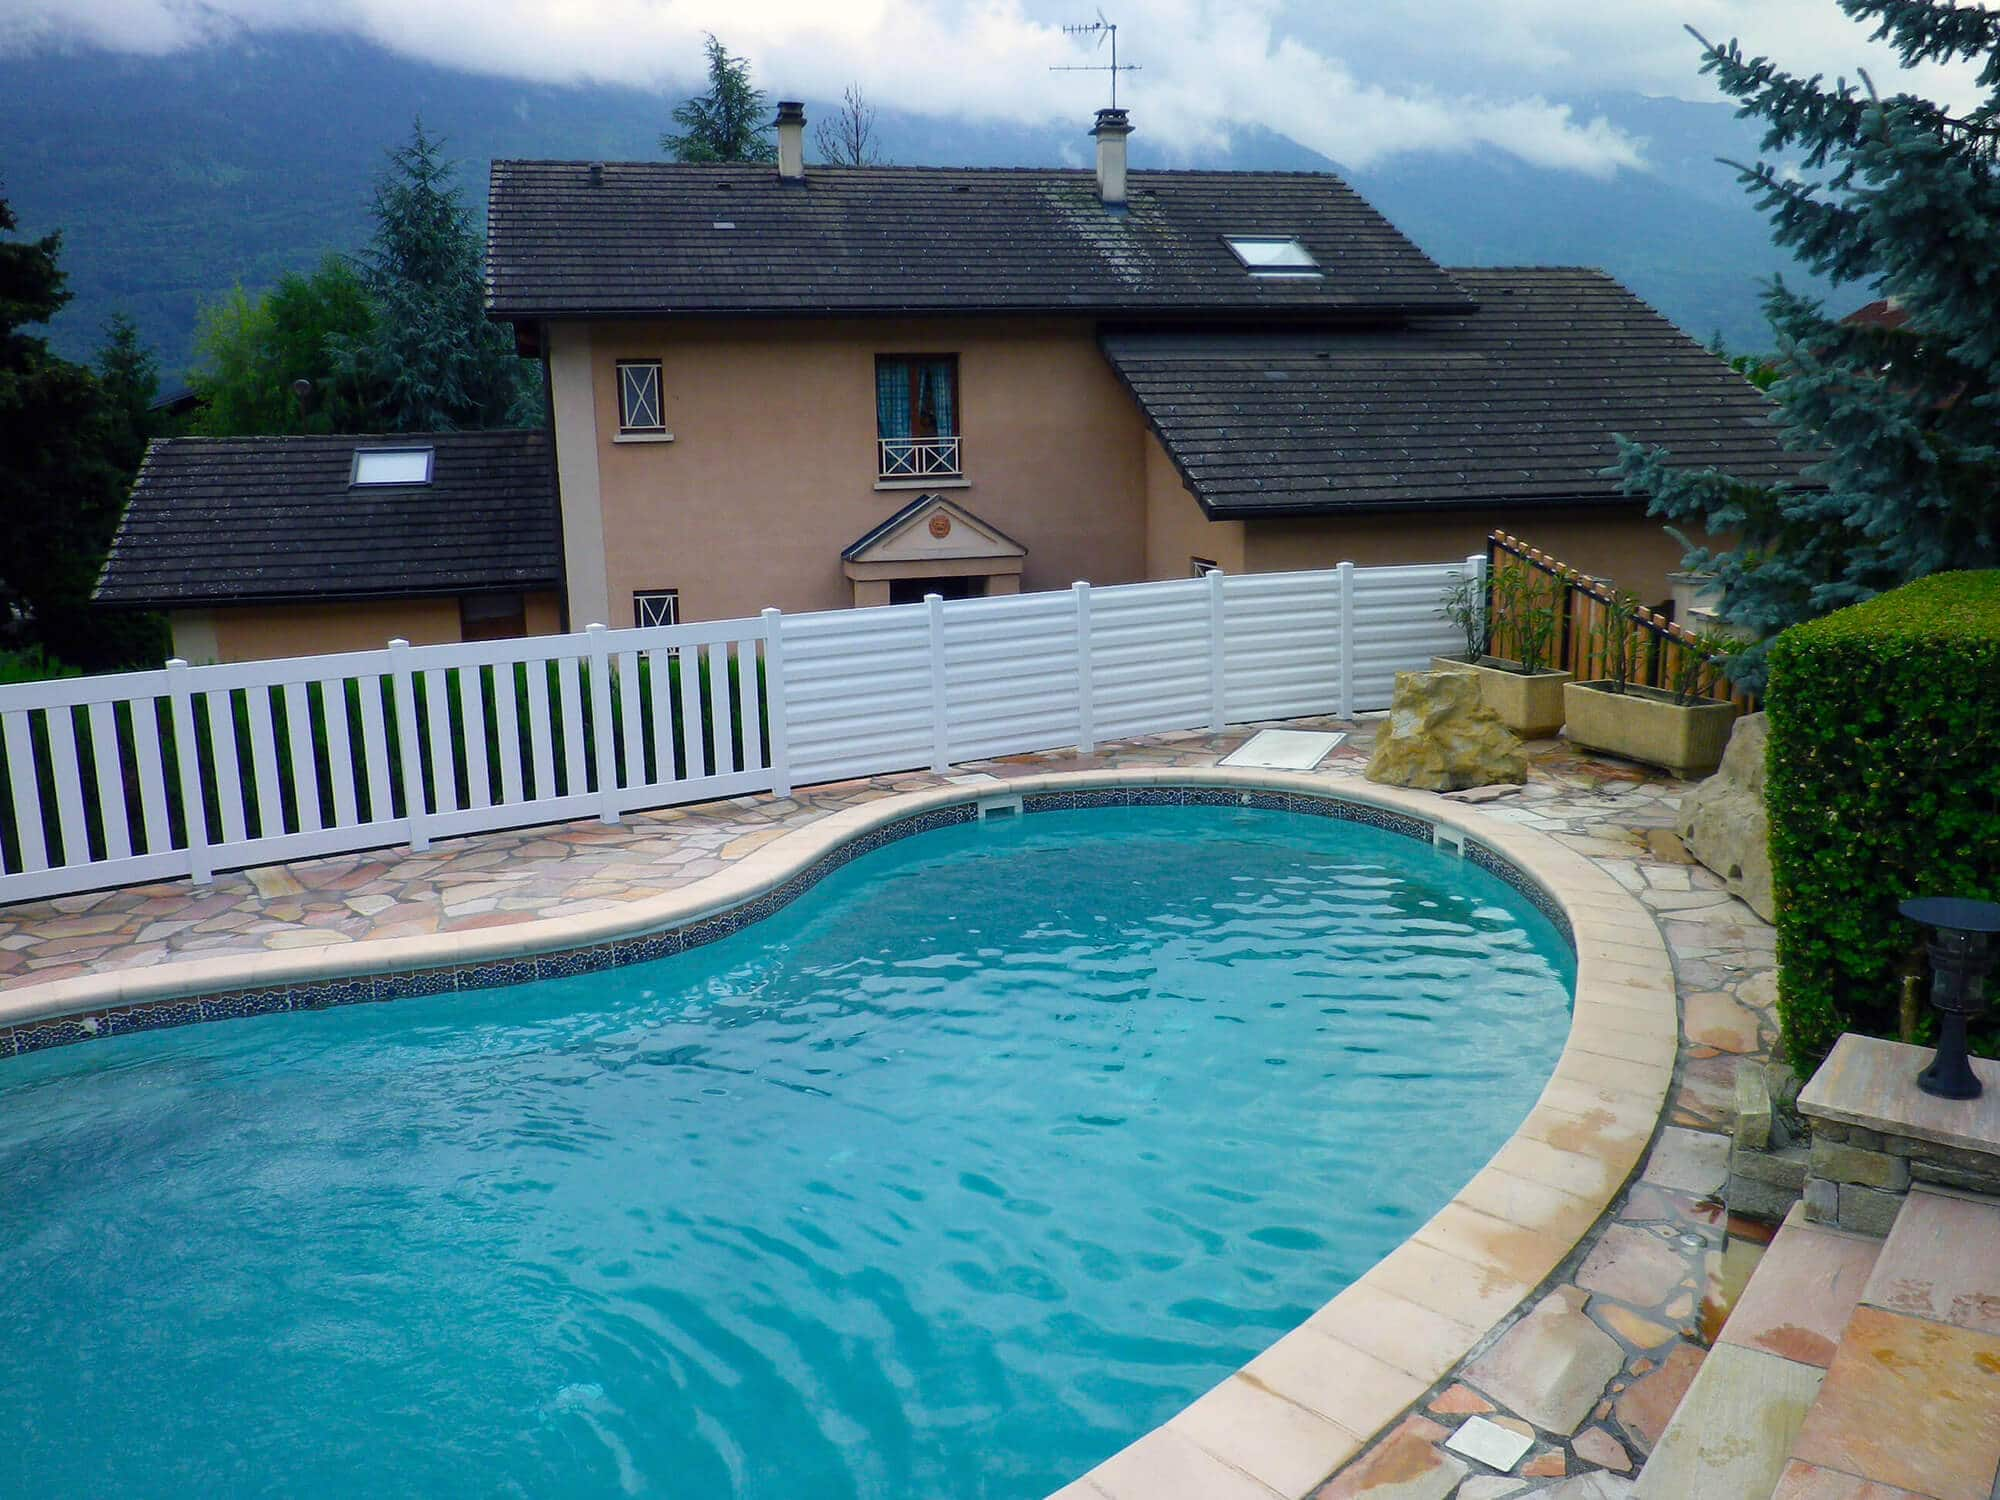 Pose de cl ture pour piscine solabaie alp 39 fermetures for Clotures de piscine